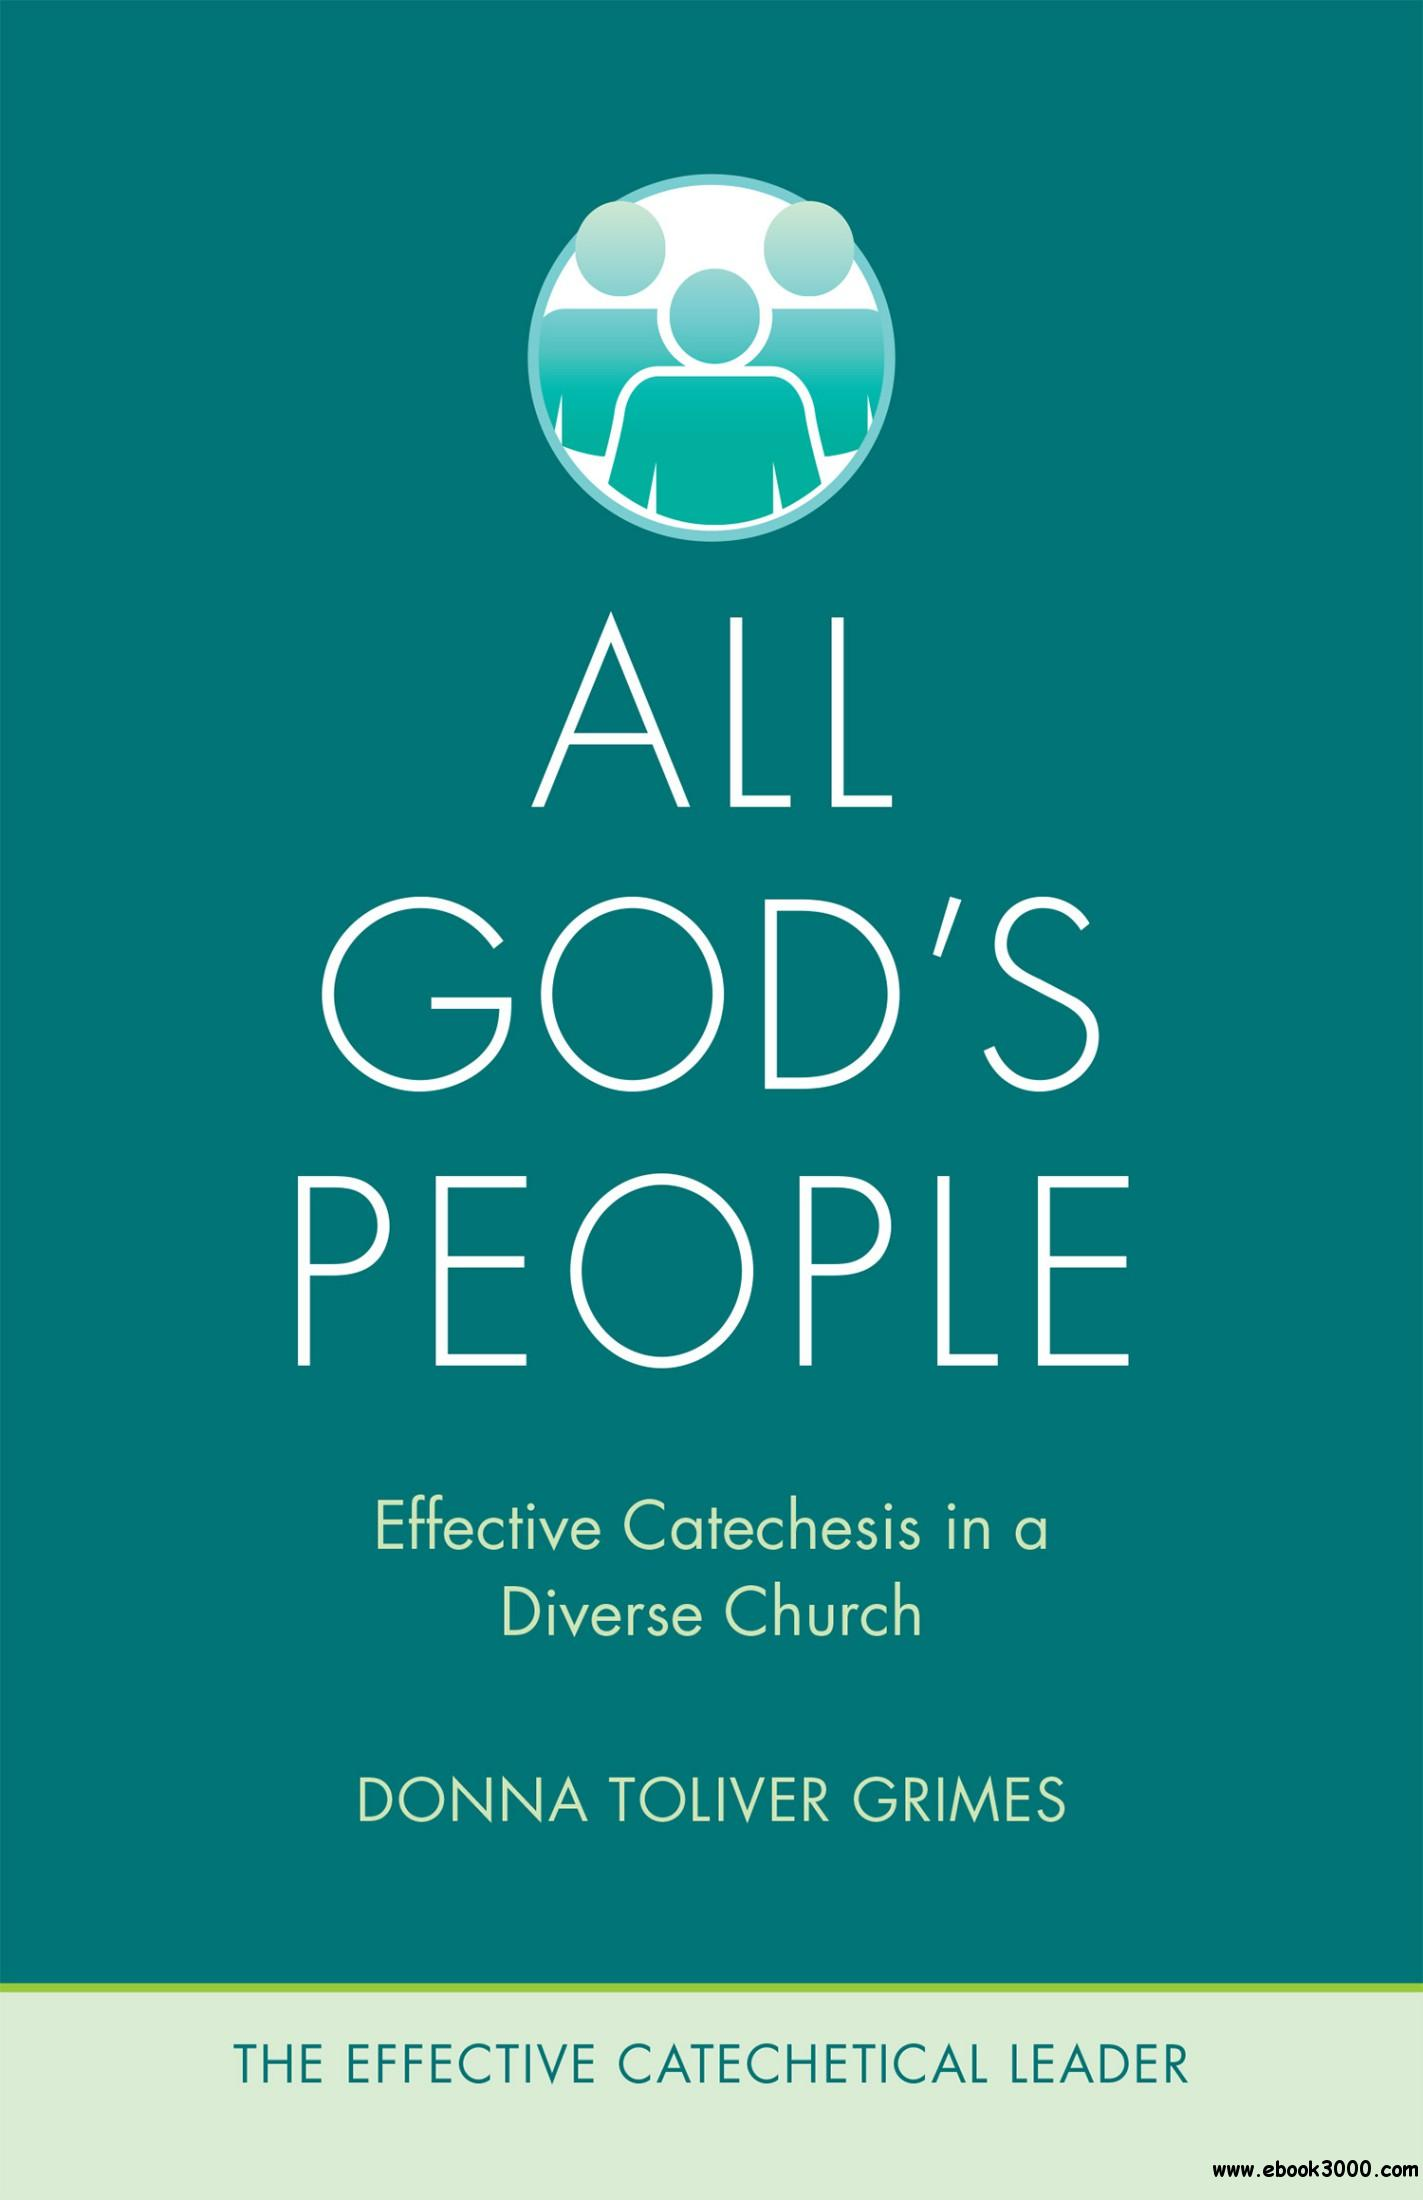 All God's People: Effective Catechesis in a Diverse Church (The Effective Catechetical Leader)